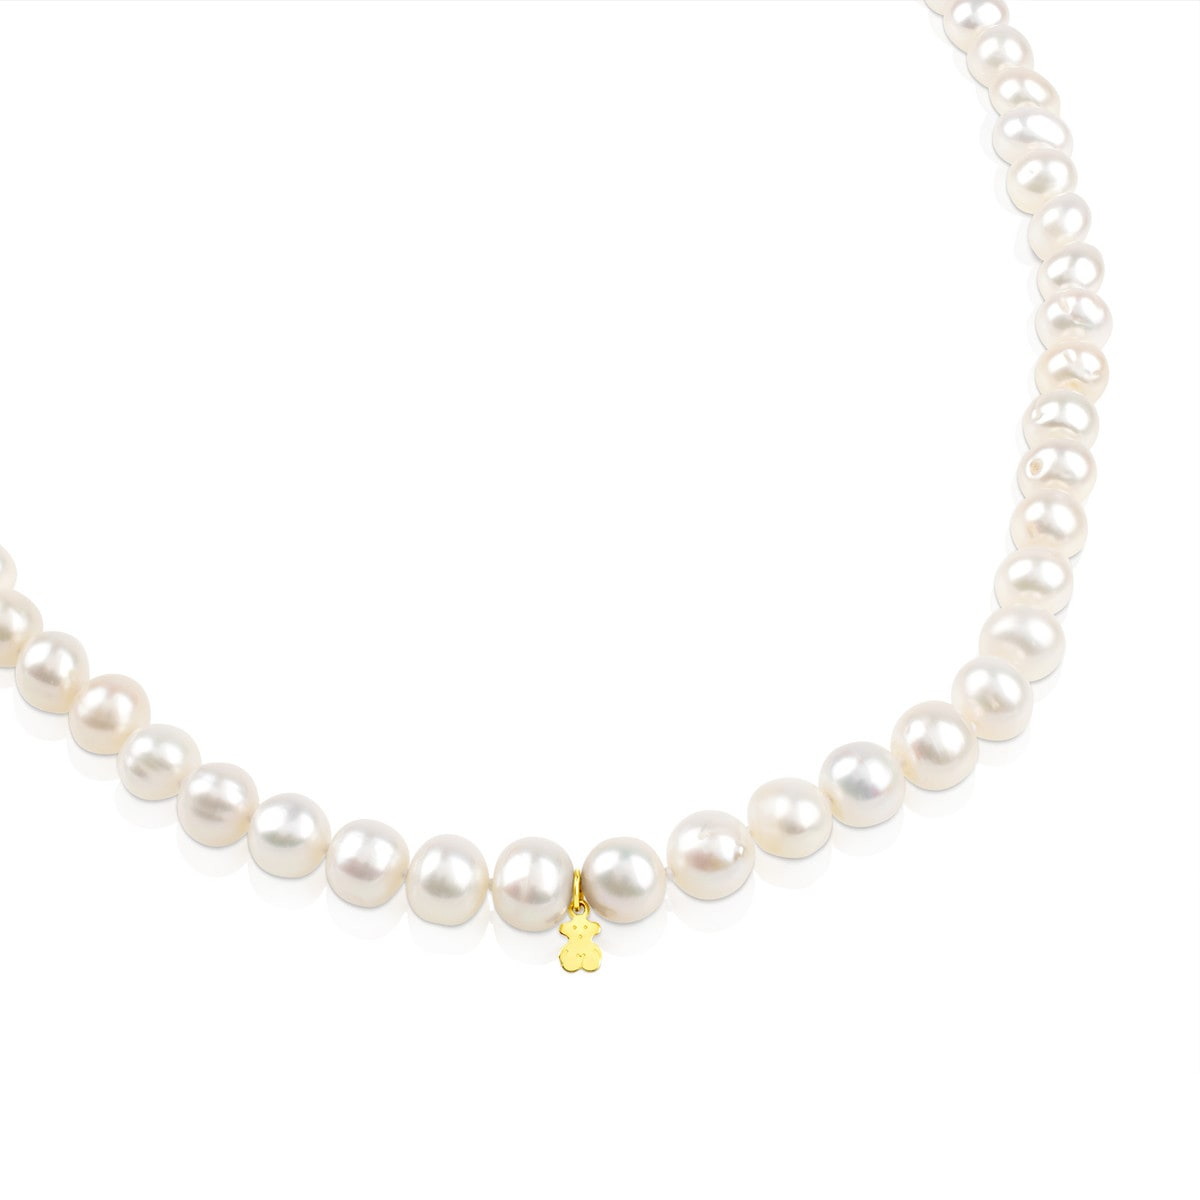 Collaret TOUS Pearls d'Or